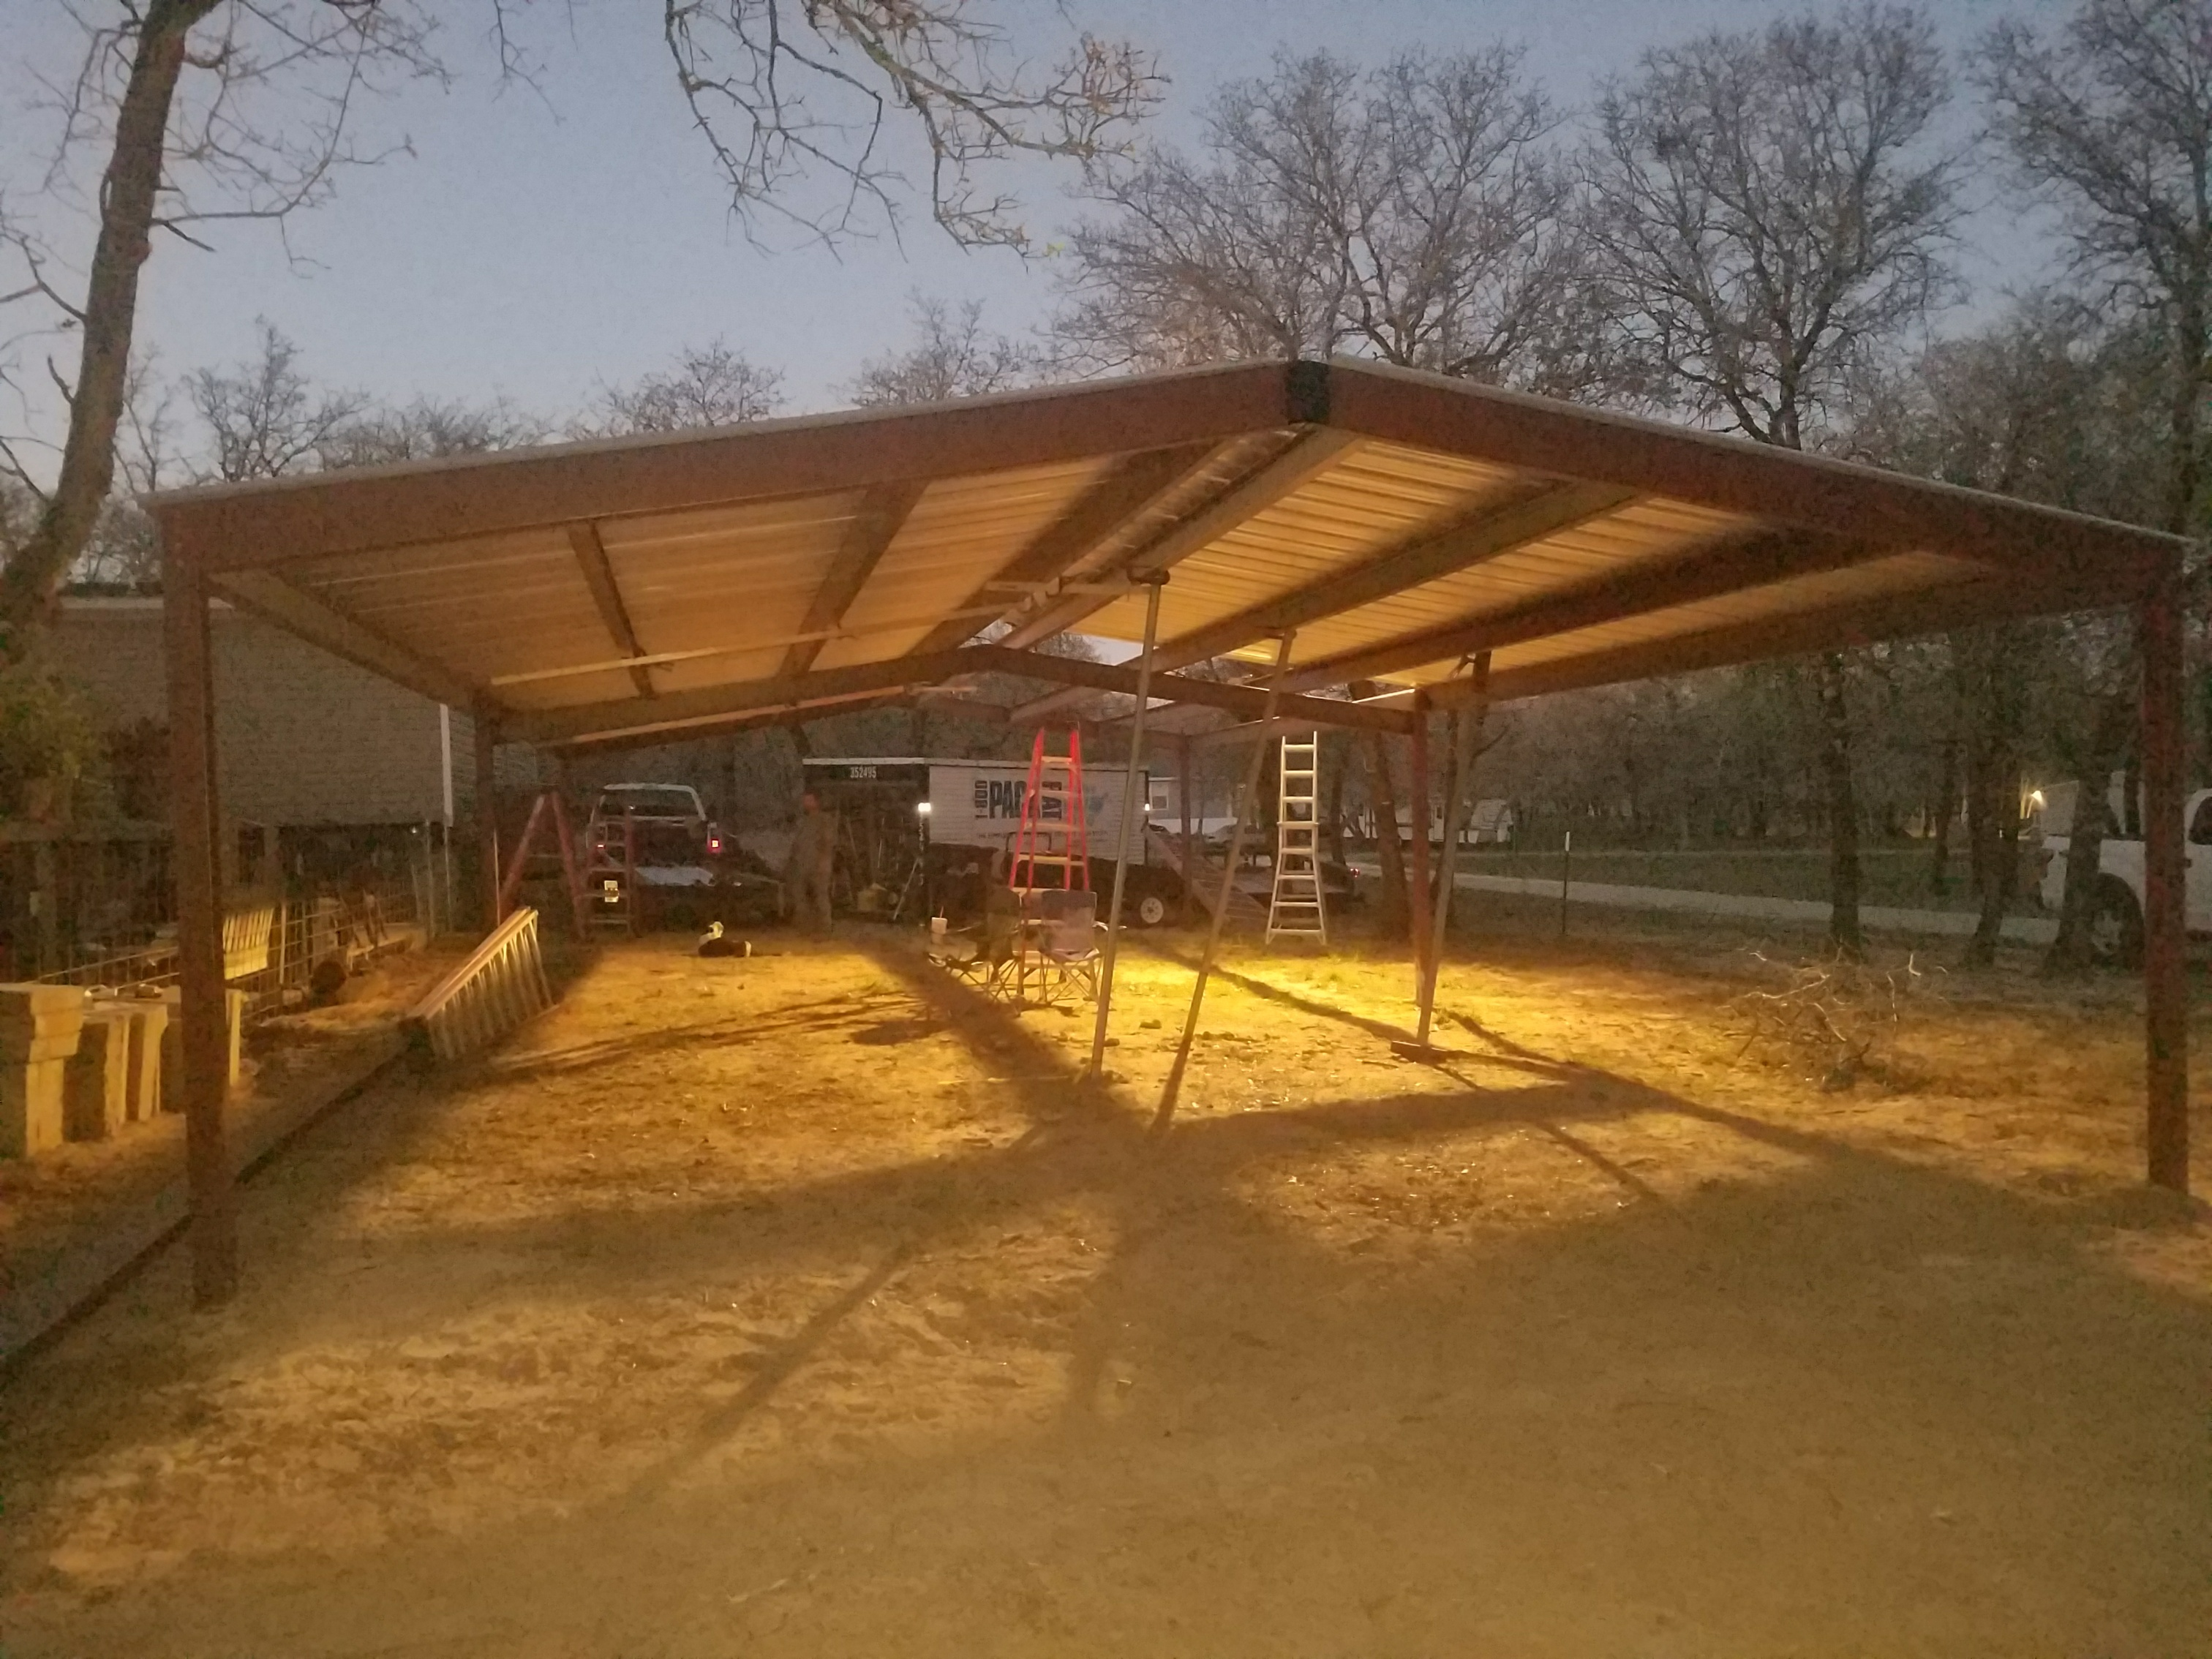 Adkins texas 20 39 x48 39 custom free standing carport for Covered car port